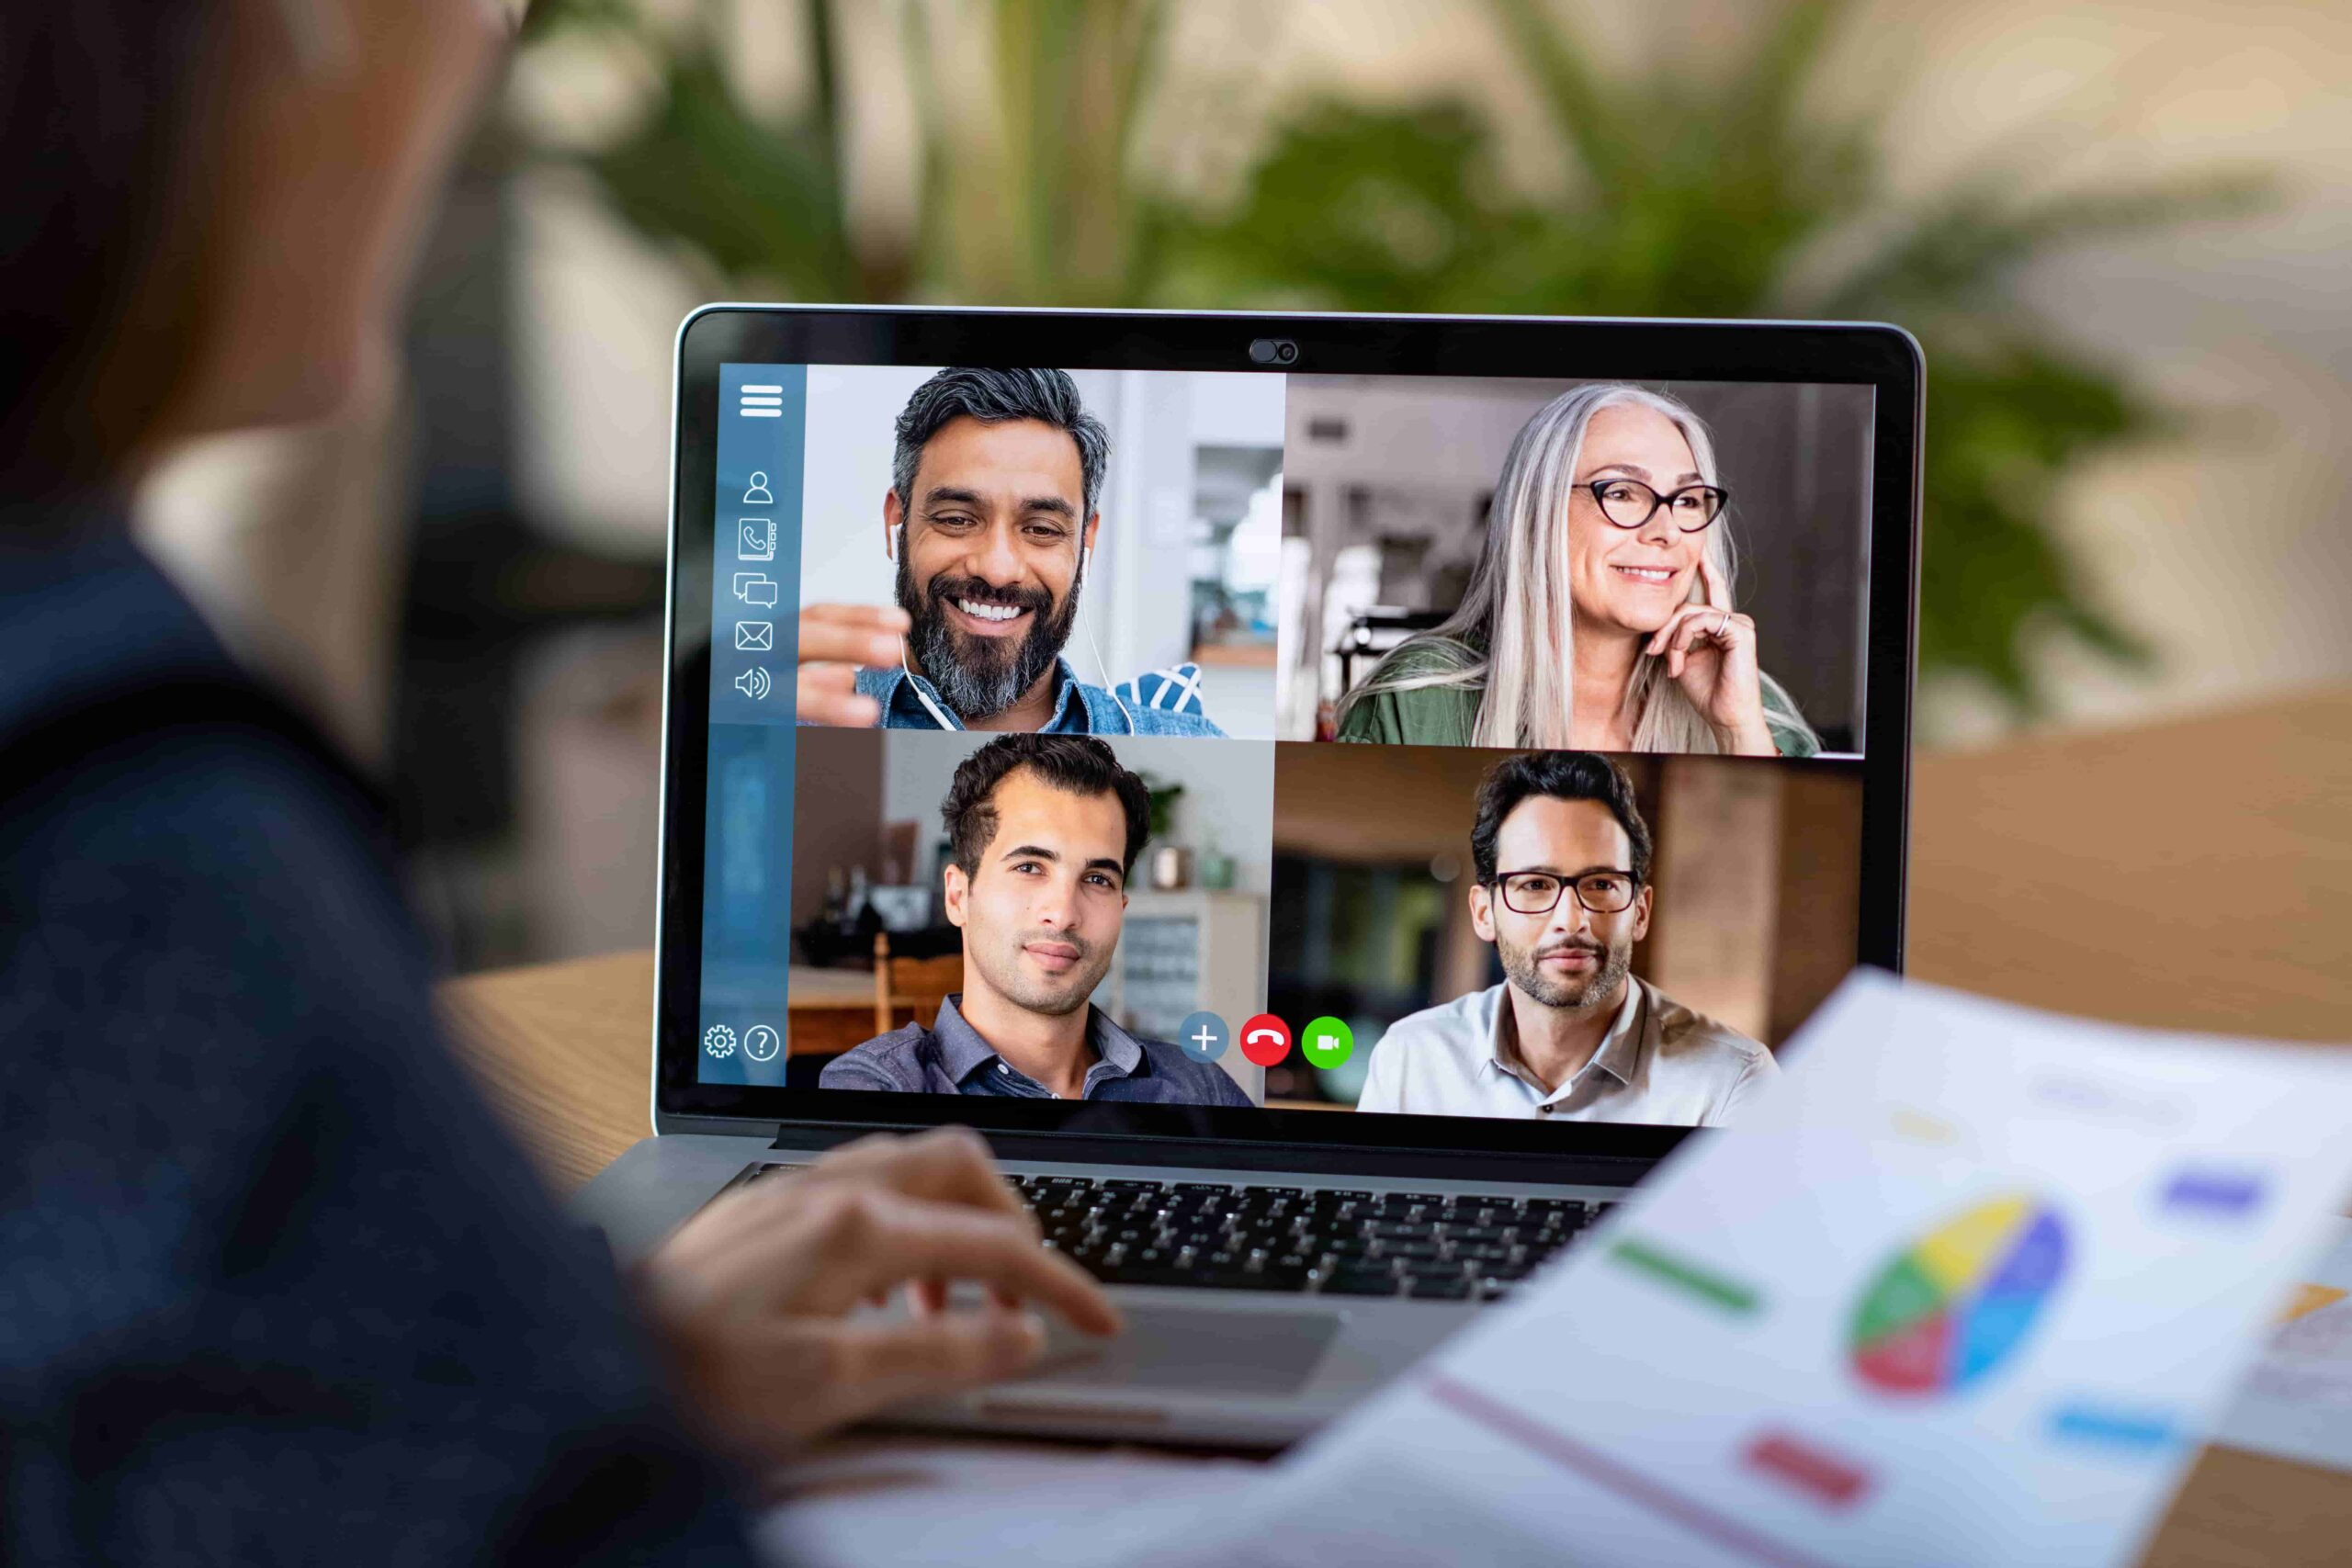 10 BEST BUDGET LAPTOP FOR VIDEO CONFERENCING IN 2021